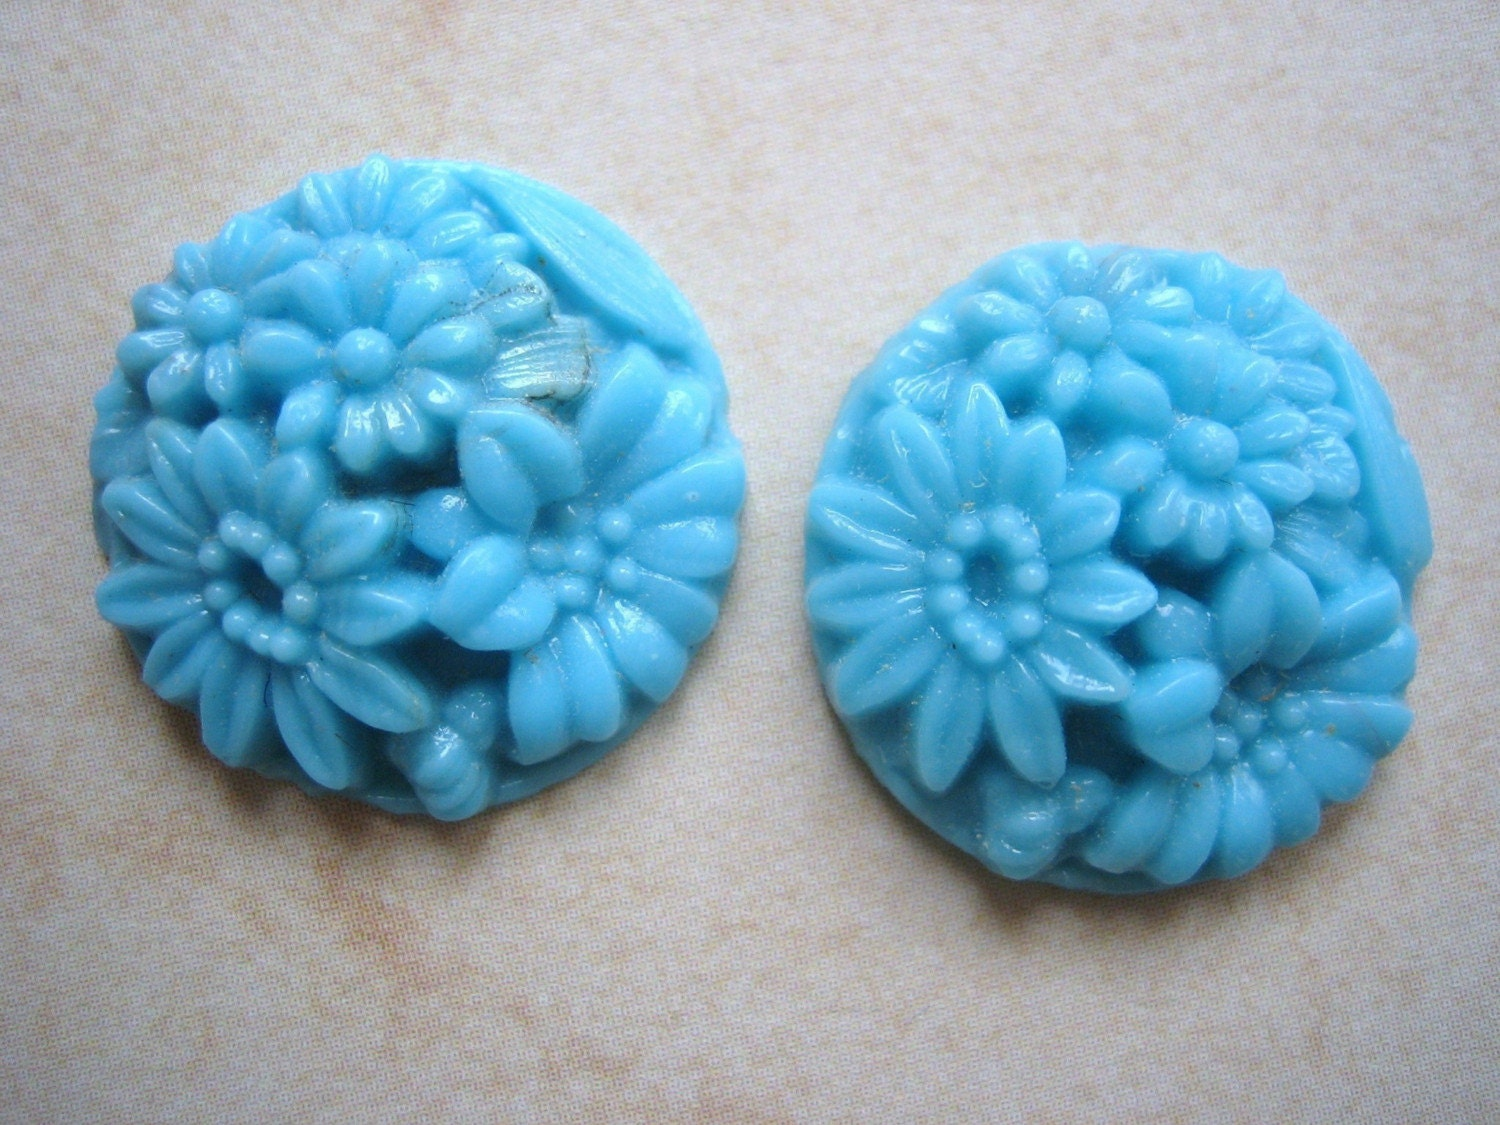 Carved Stone Glass : Two vintage cabochons glass japanese carved stone cab aqua